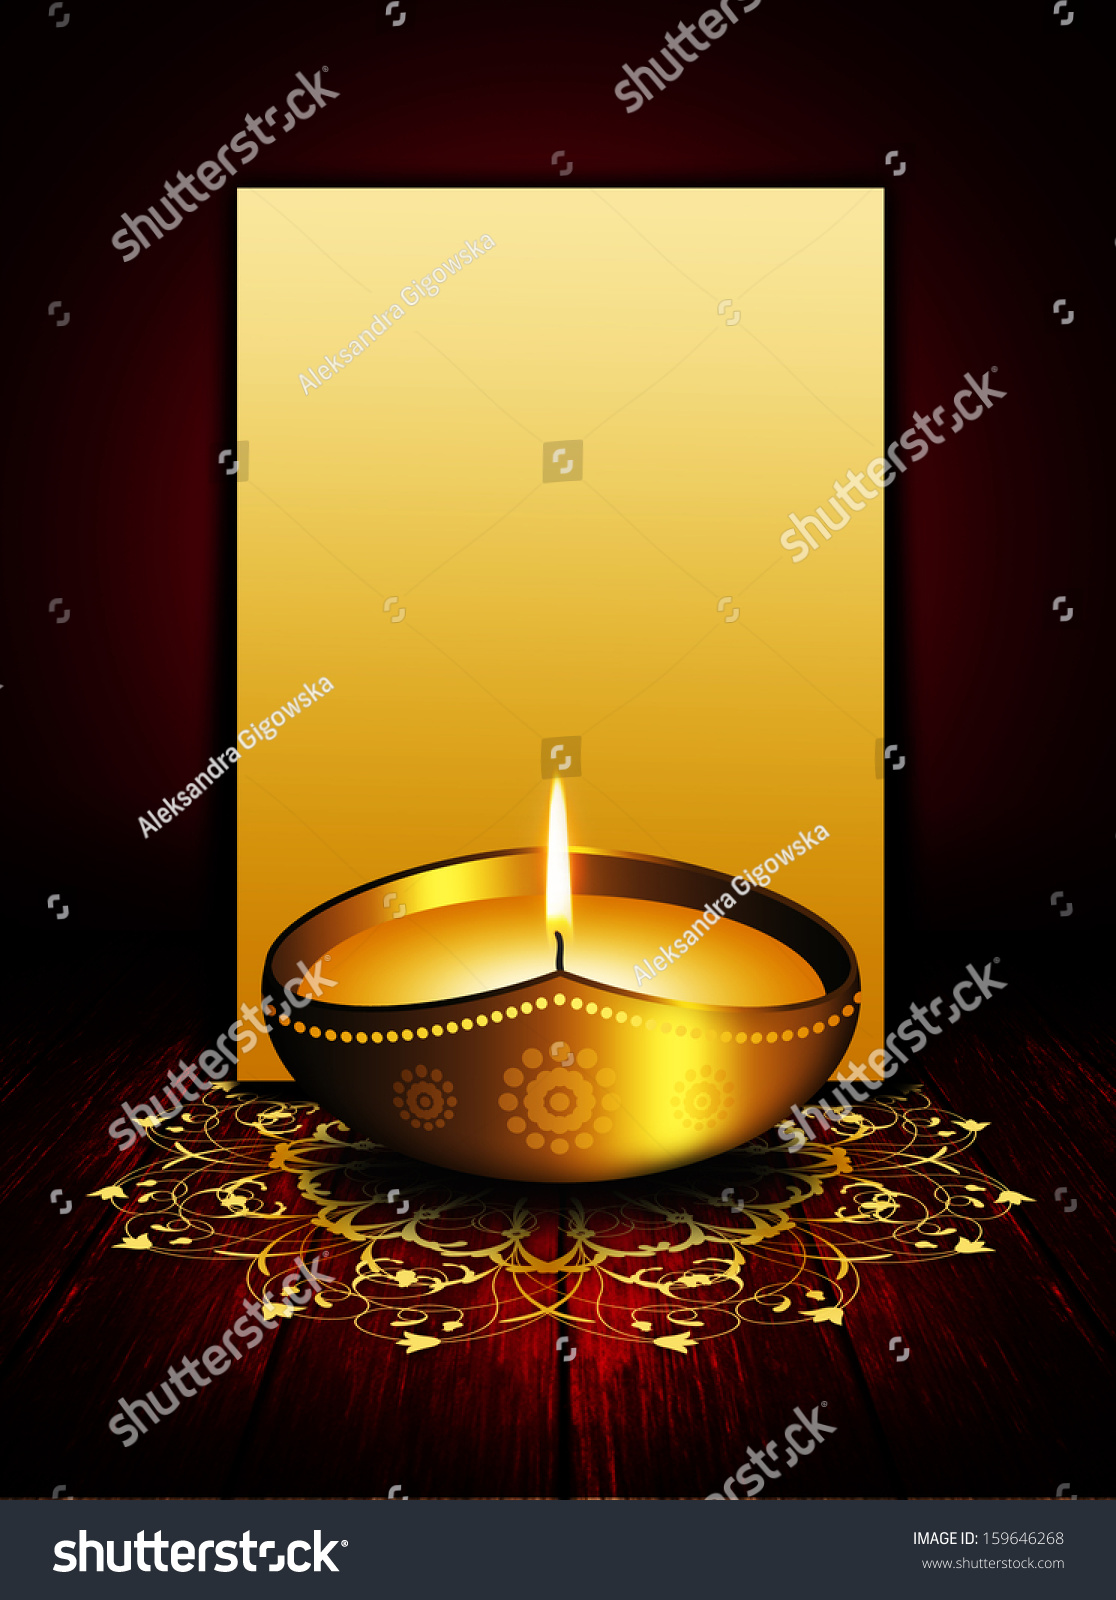 Oil Lamp Place Diwali Greetings Over Stock Illustration 159646268